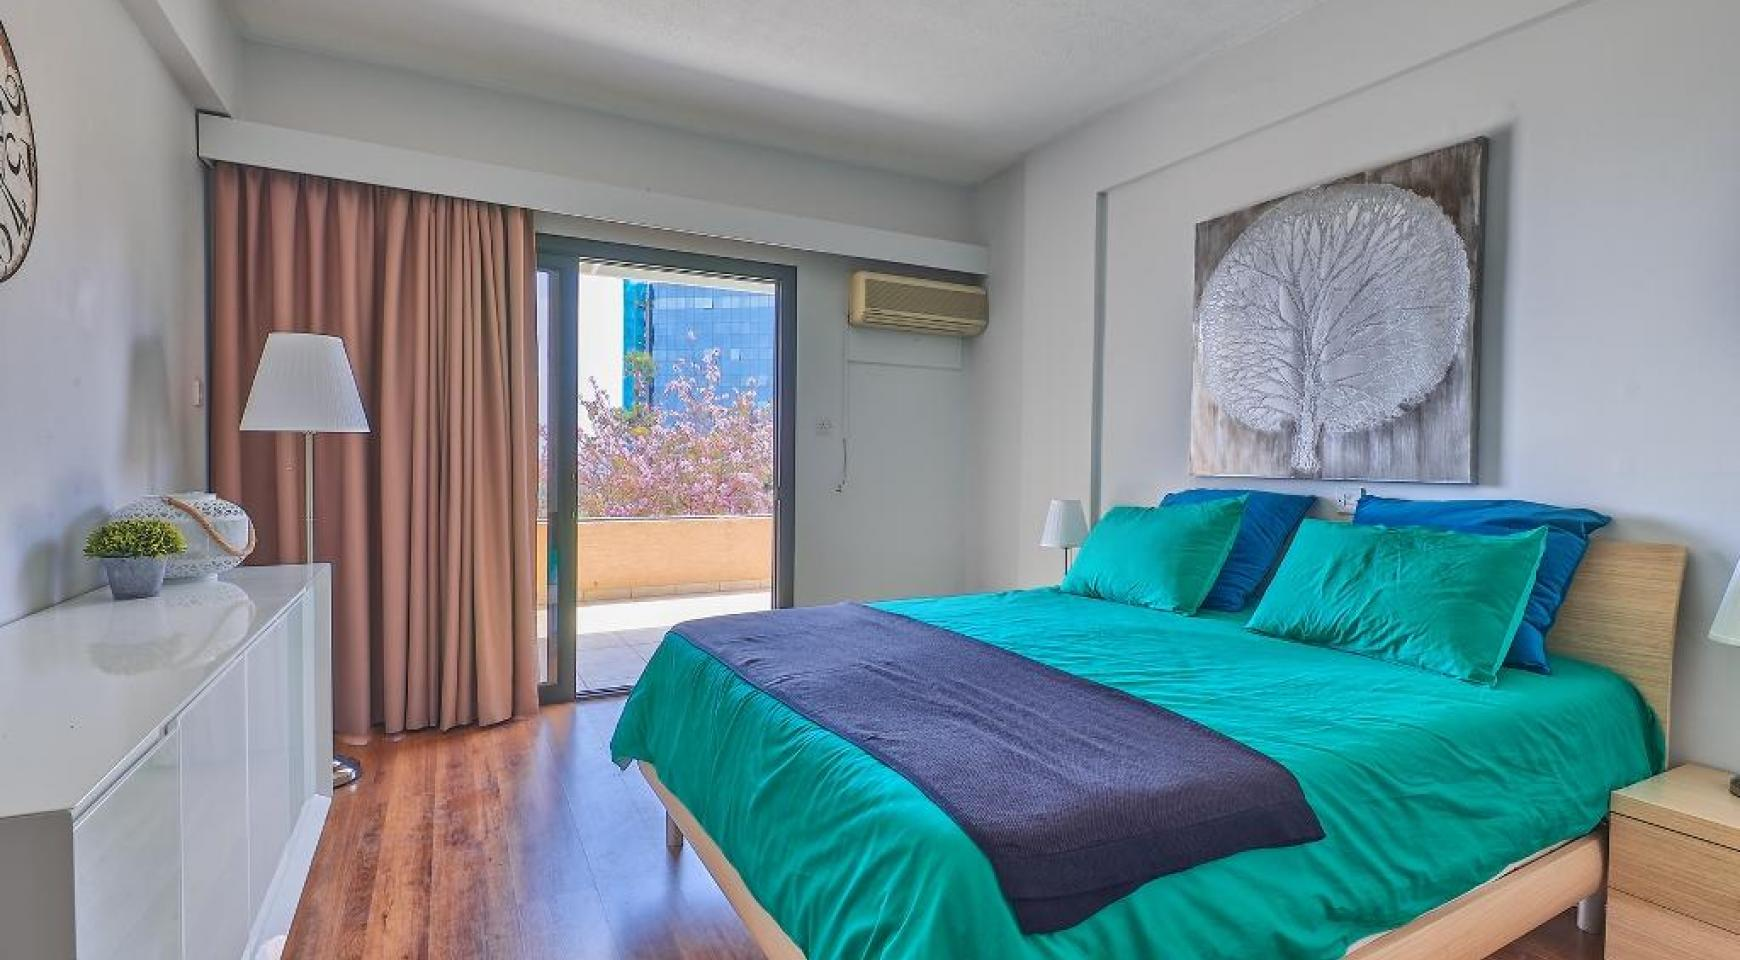 Spacious One Bedroom Apartment Bahus 107 by the Sea - 5